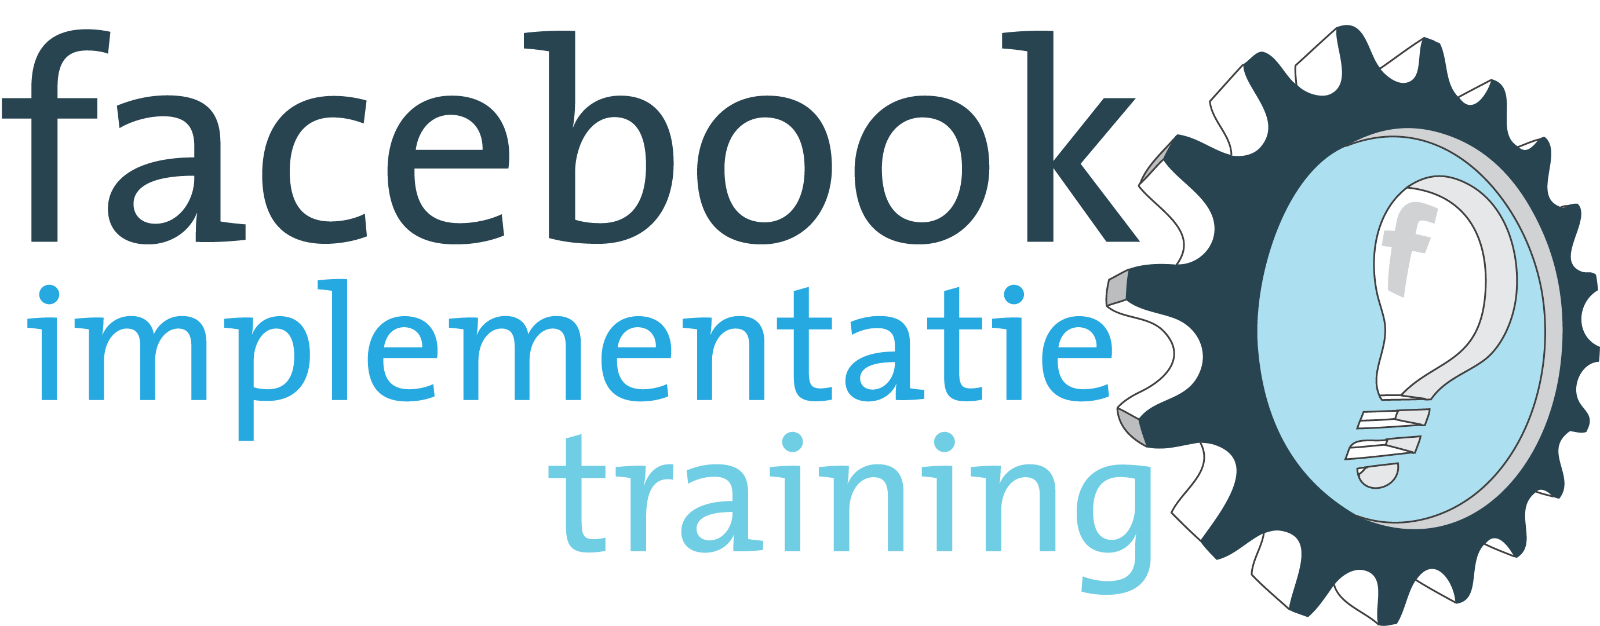 Facebook Implementatietraining 28 februari 2018